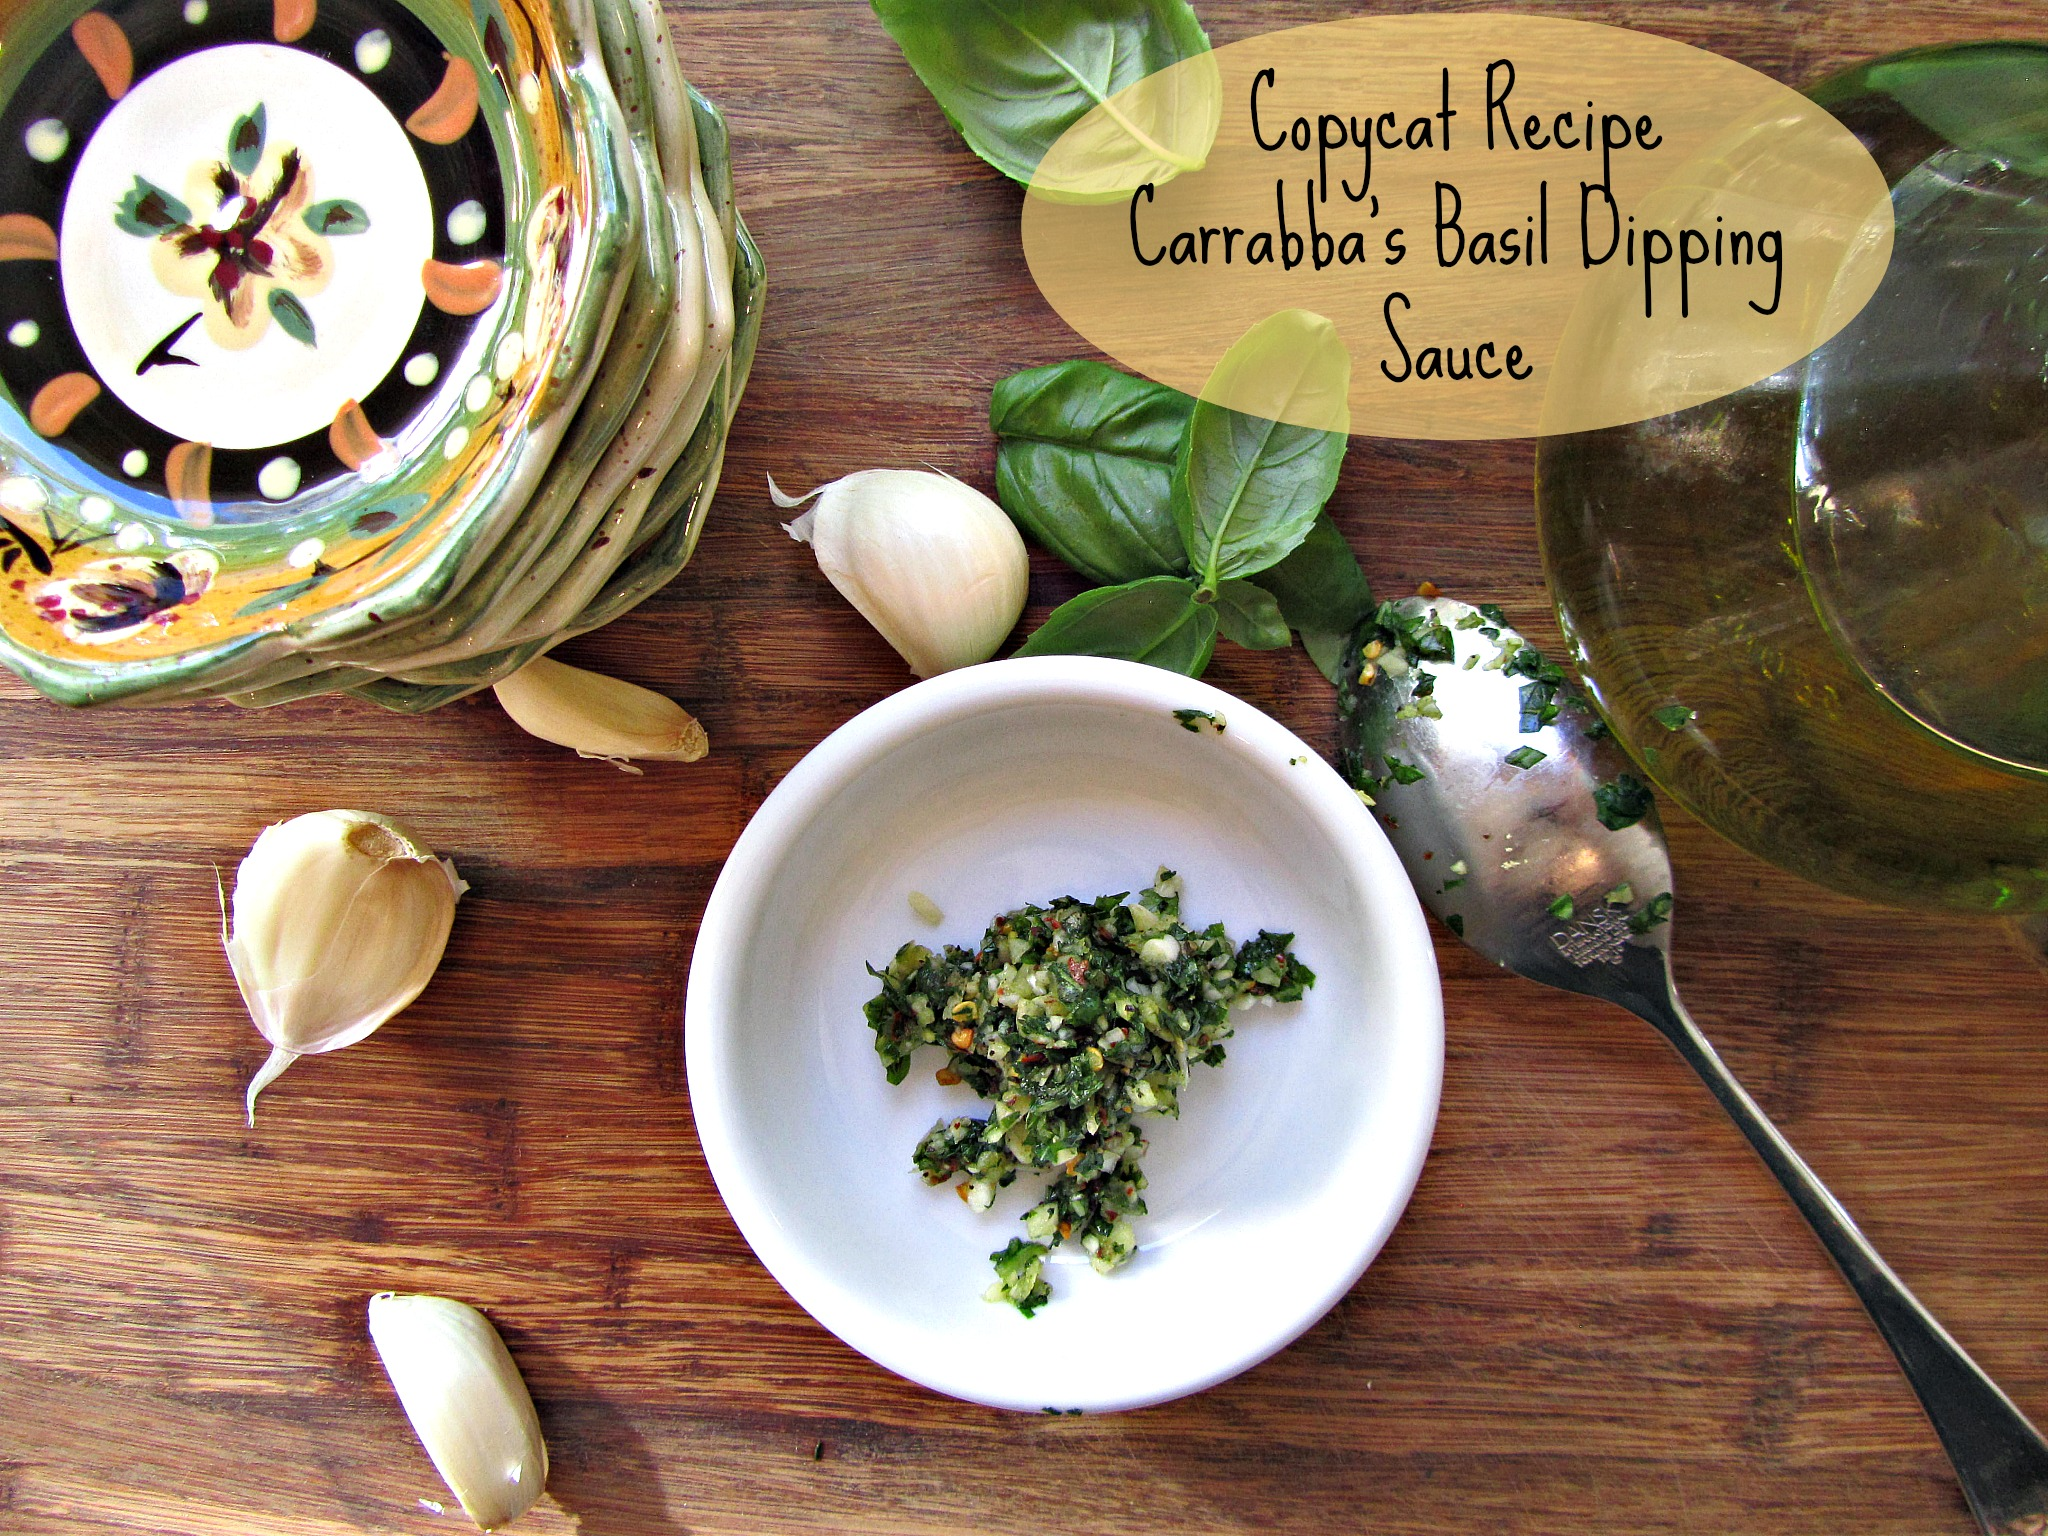 Garlic, Basil Dipping Sauce